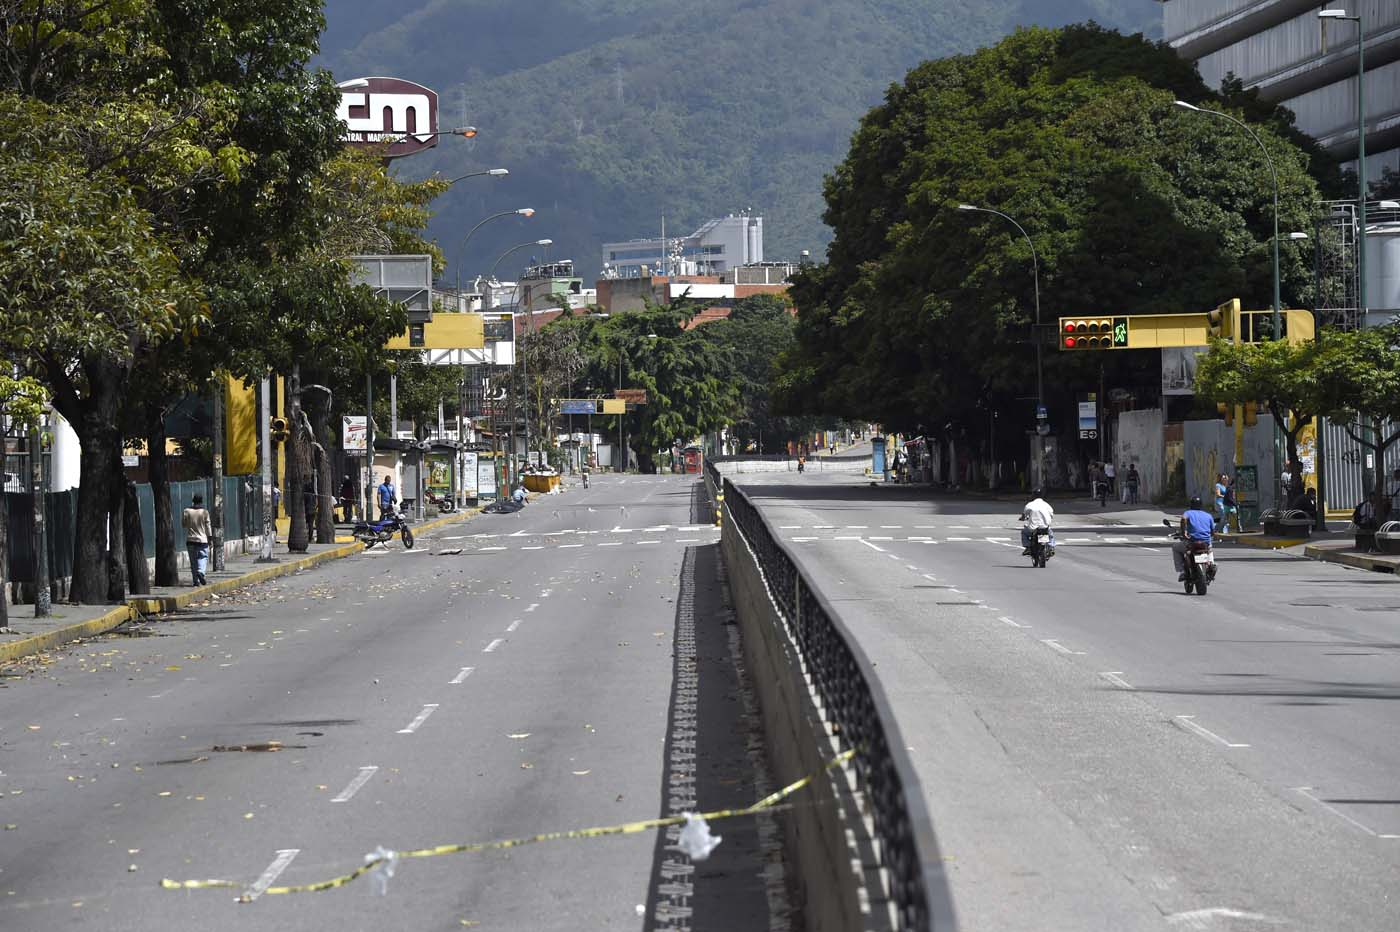 An avenue looks void of vehicles during a general strike in Caracas, on July 20, 2017. A 24-hour nationwide strike got underway in Venezuela Thursday, in a bid by the opposition to increase pressure on beleaguered leftist President Nicolas Maduro following four months of deadly street demonstrations. / AFP PHOTO / JUAN BARRETO